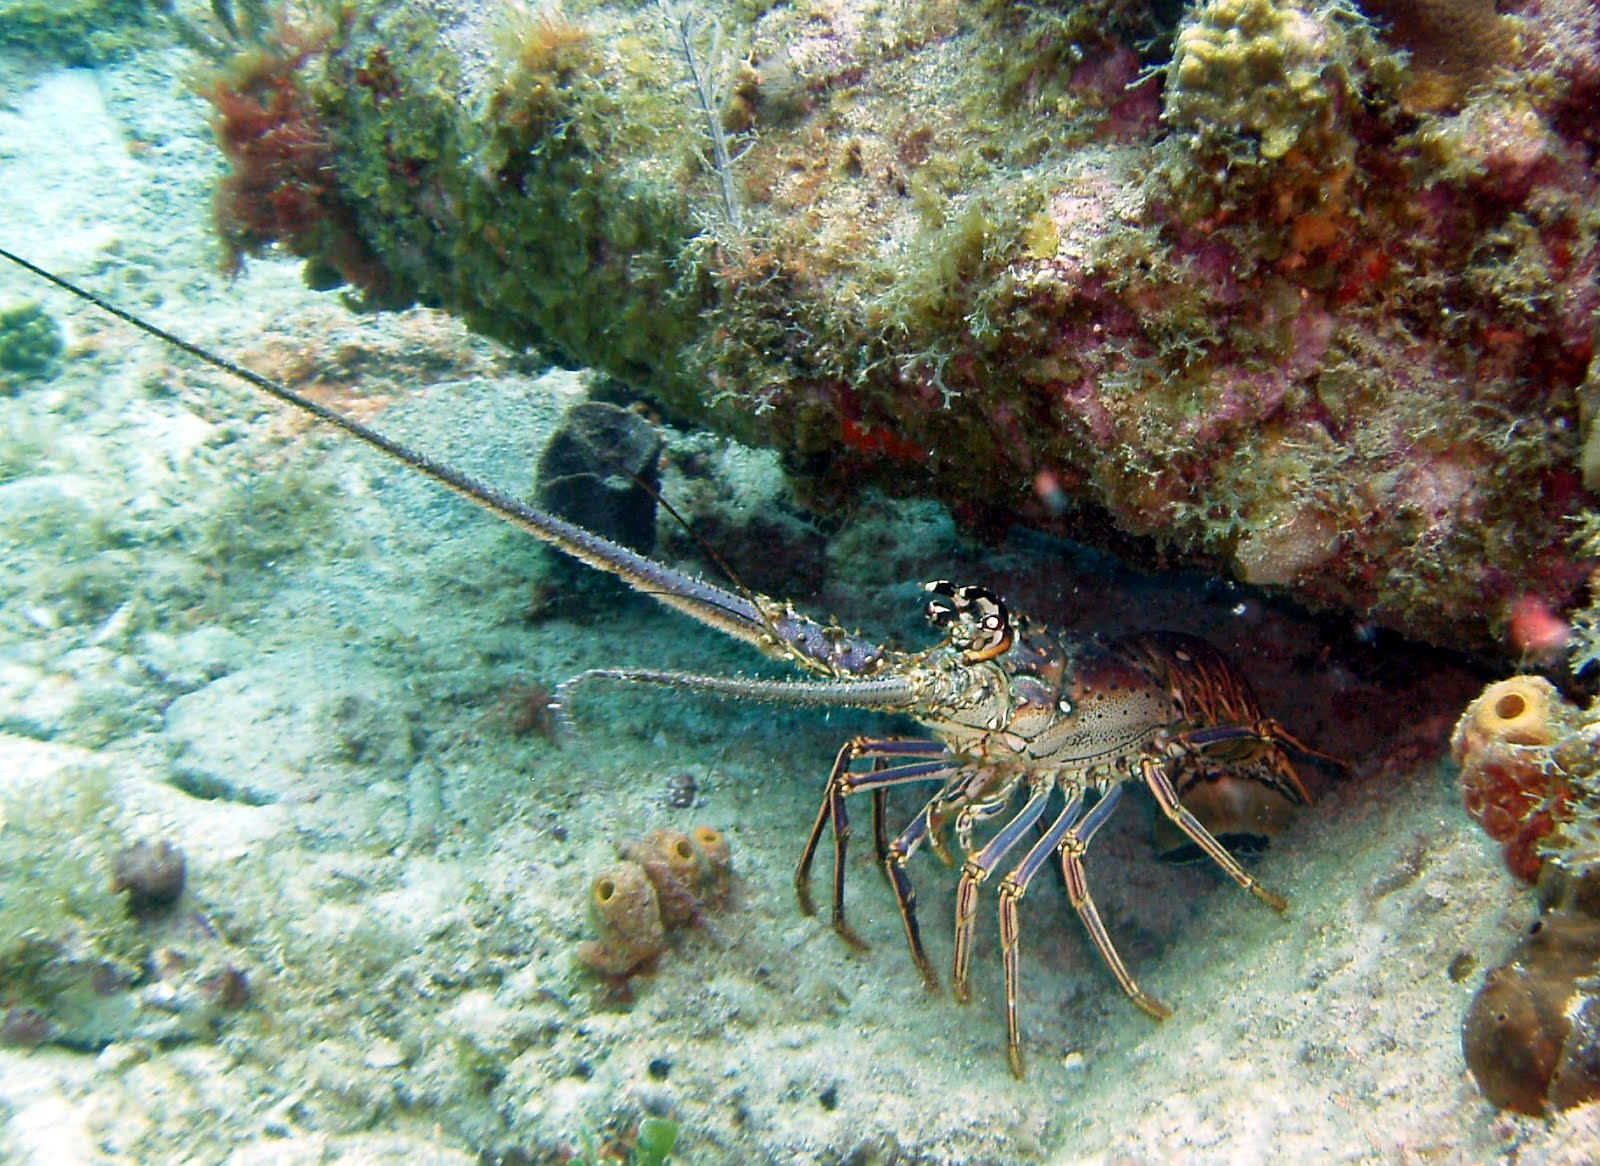 Florida Spiny Lobster Record - Bing images